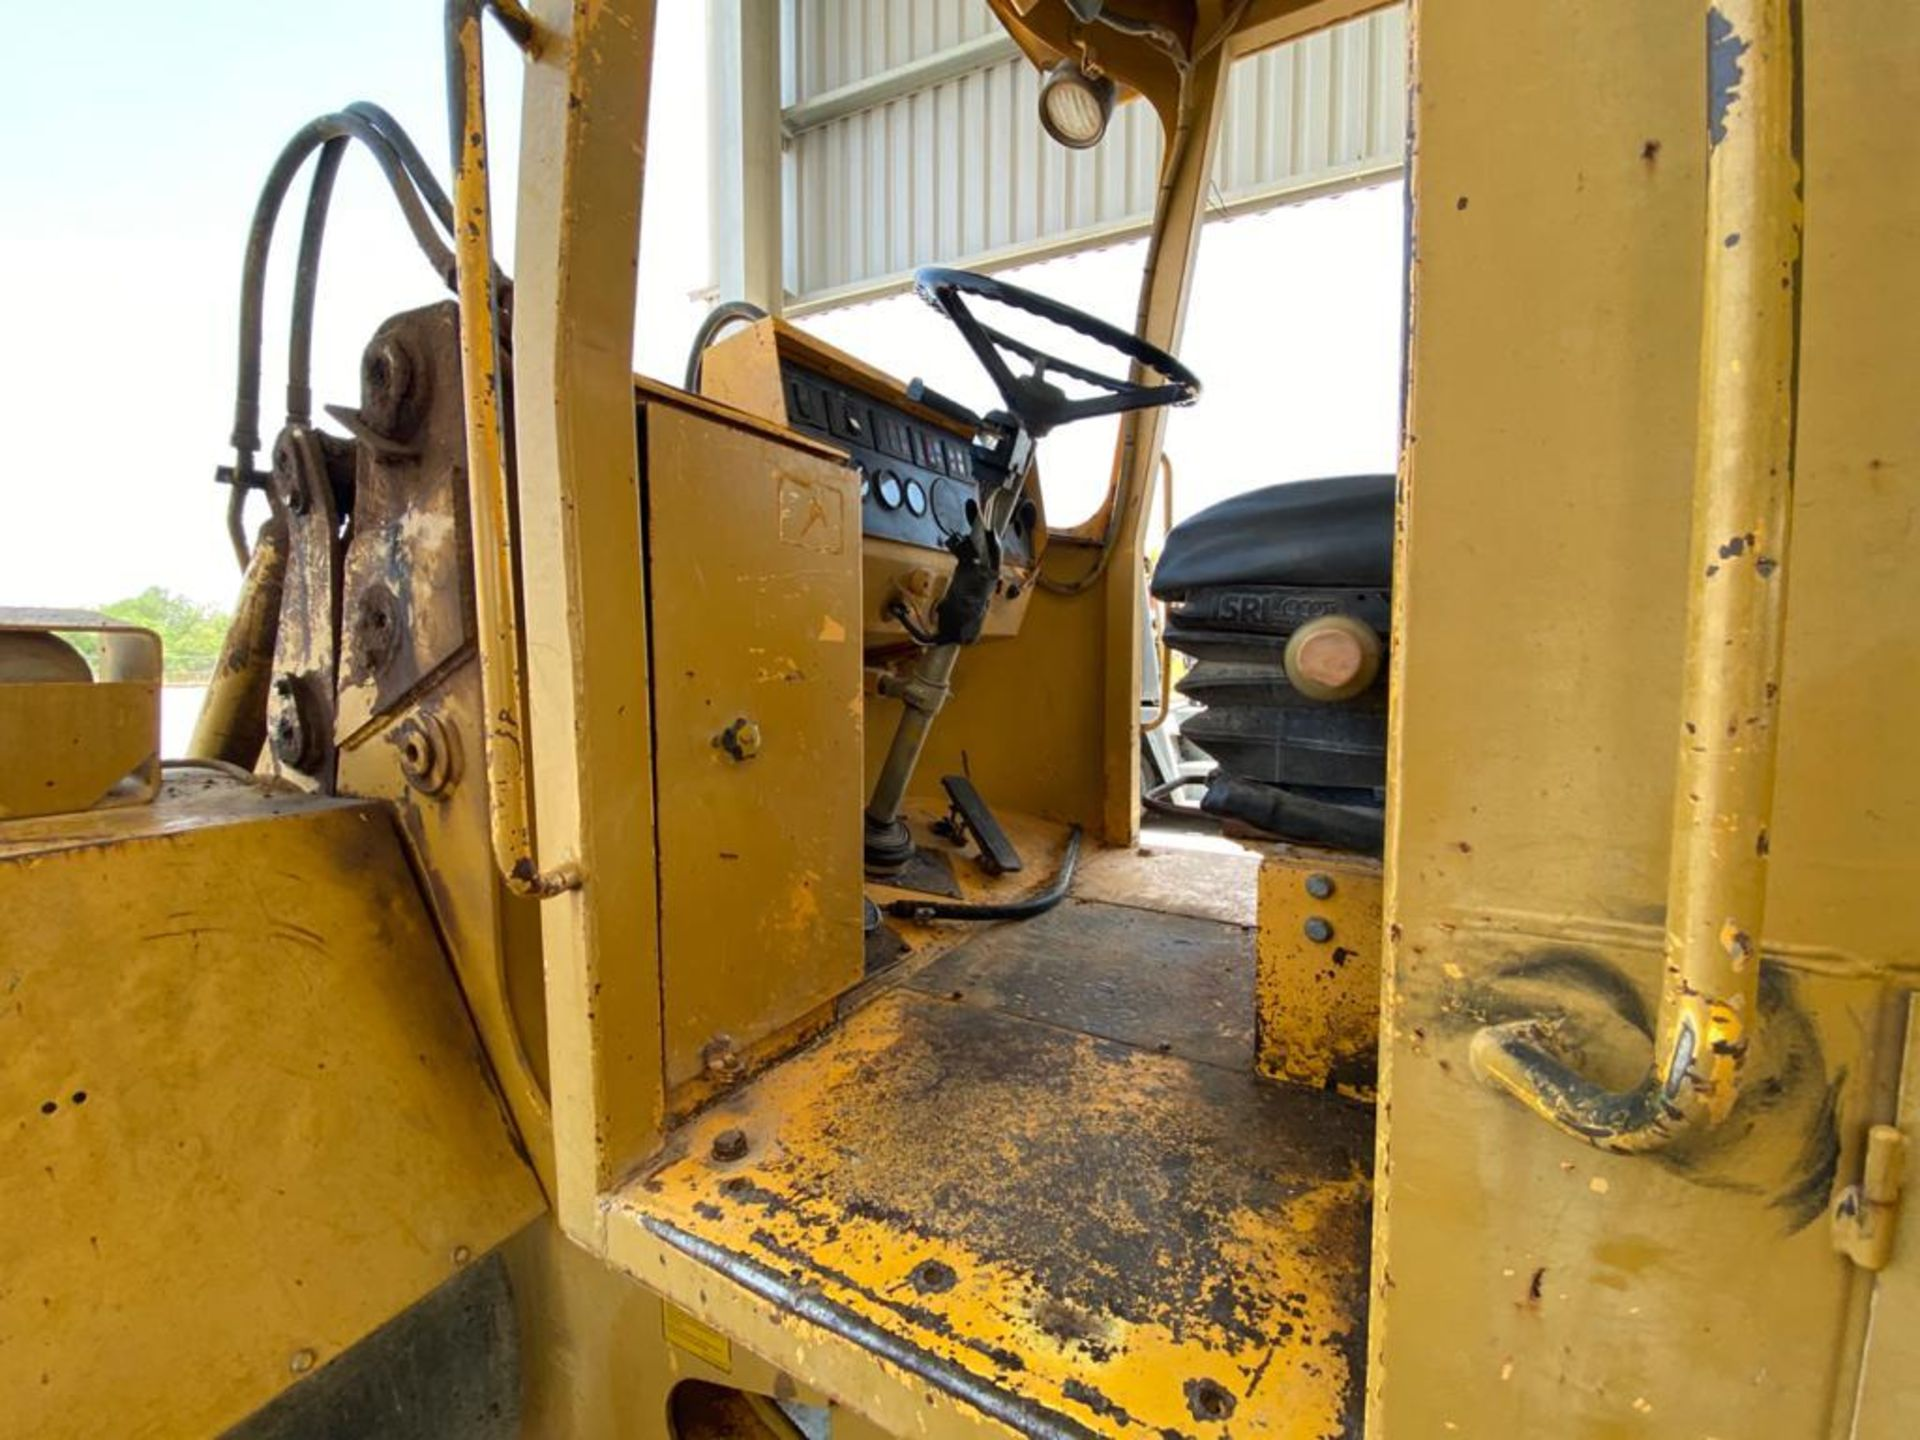 Volvo BM TYPE L 30 Michigan Front Loder, automatic transmission - Image 26 of 53